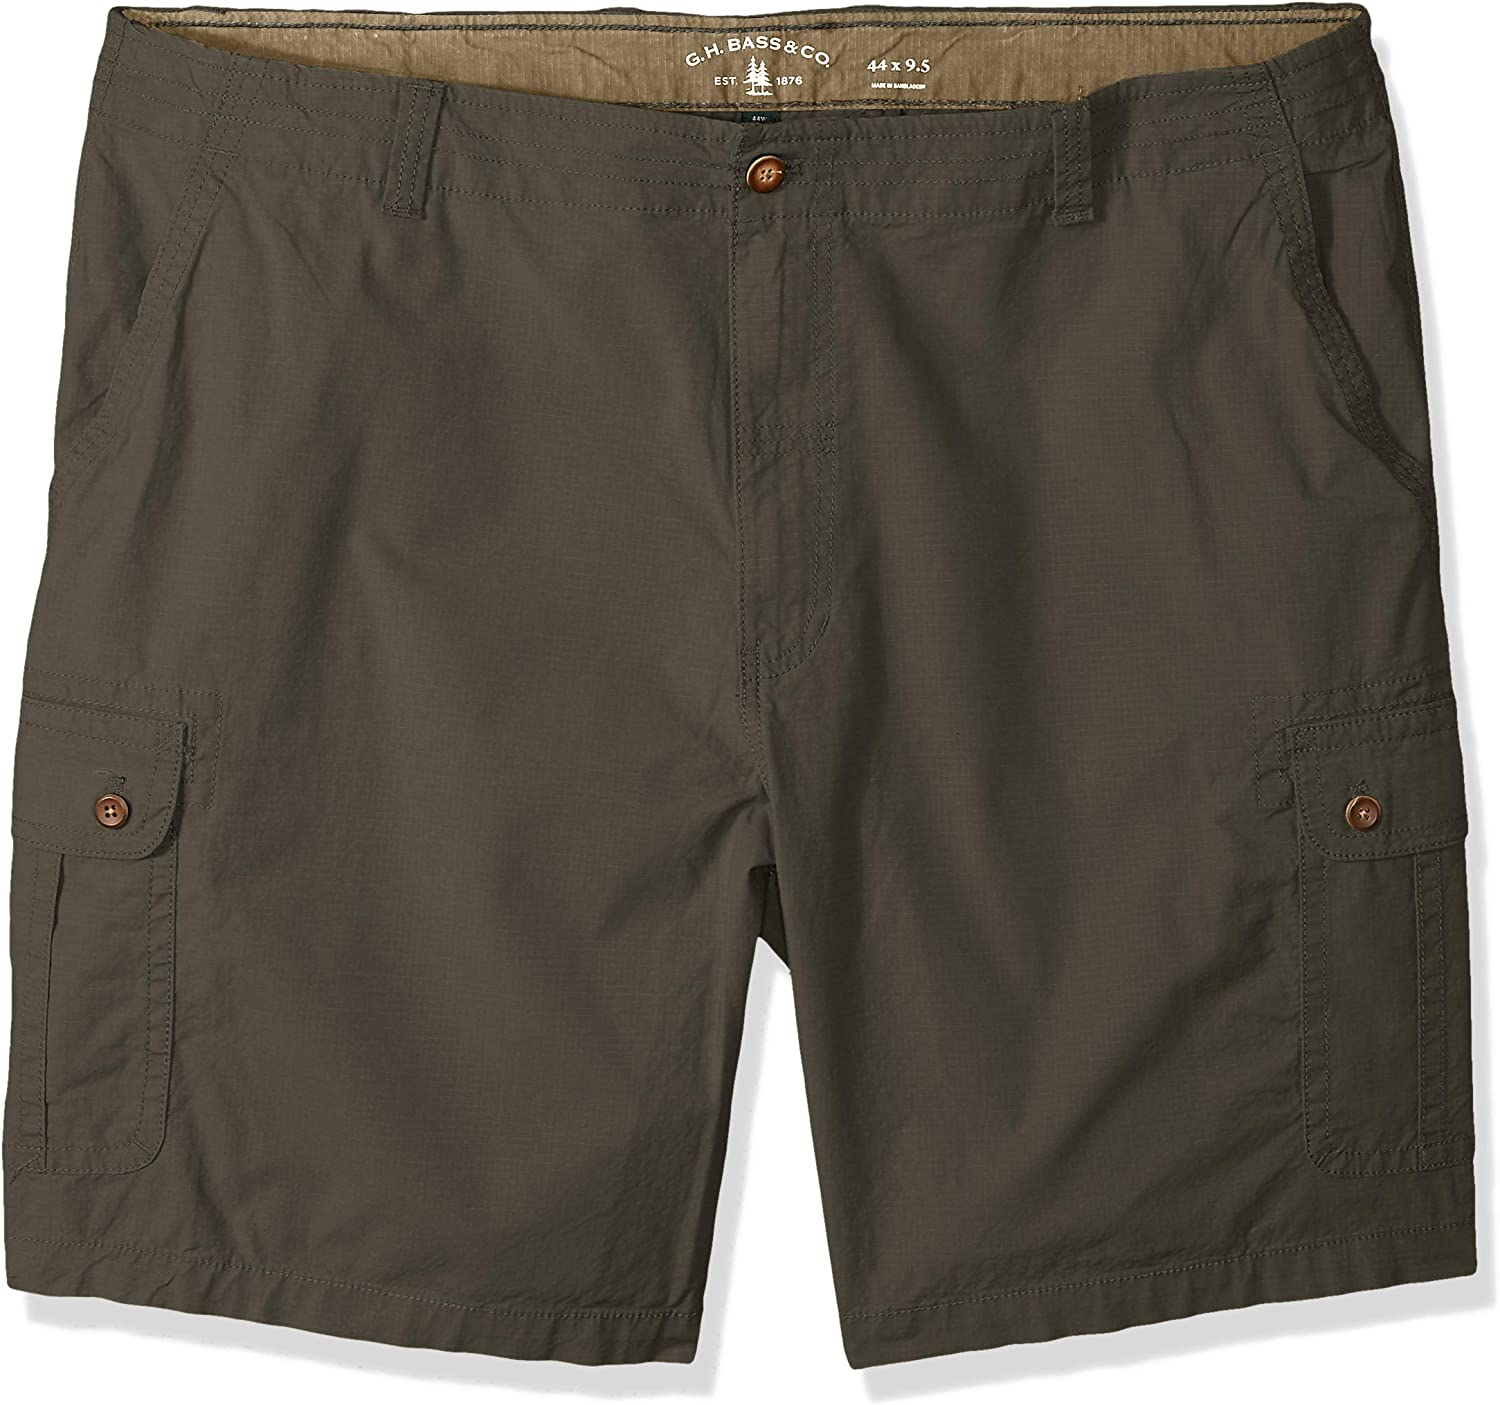 Bass /& Co G.H Mens Big and Tall Ripstop Stretch Cargo Short Cargo Shorts